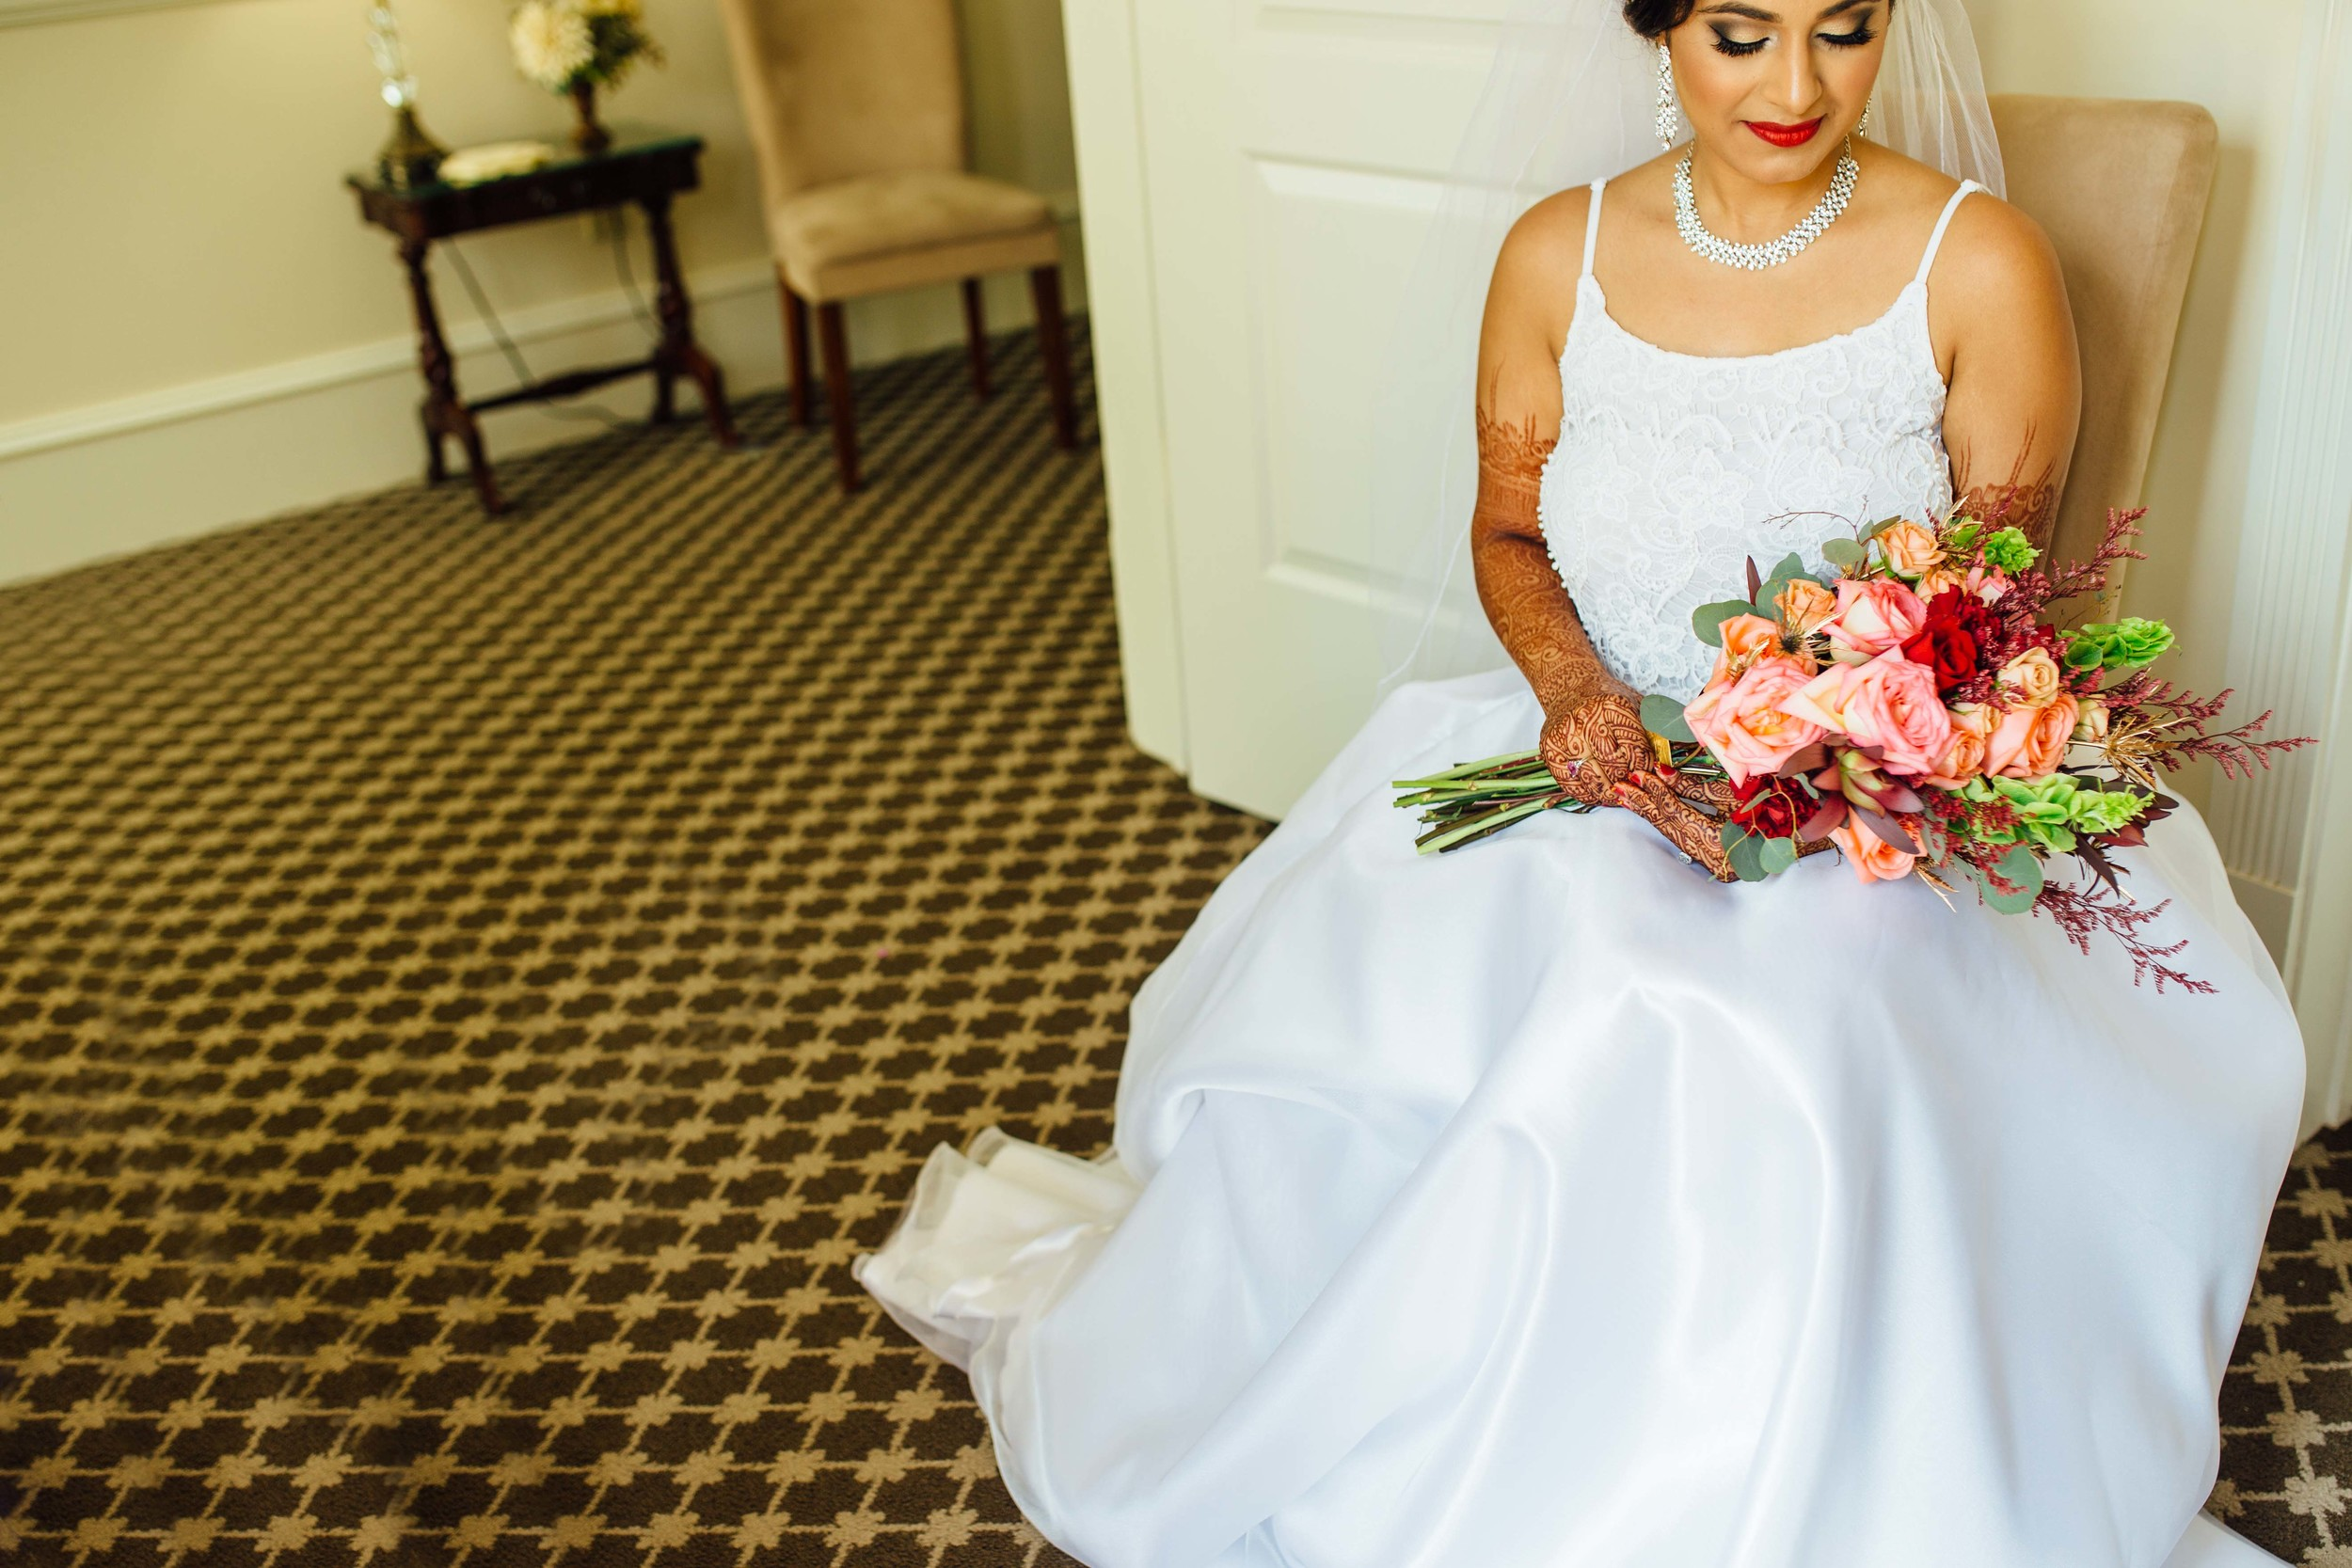 Kiyah C Photography Atlanta Wedding Photographer-26.jpg